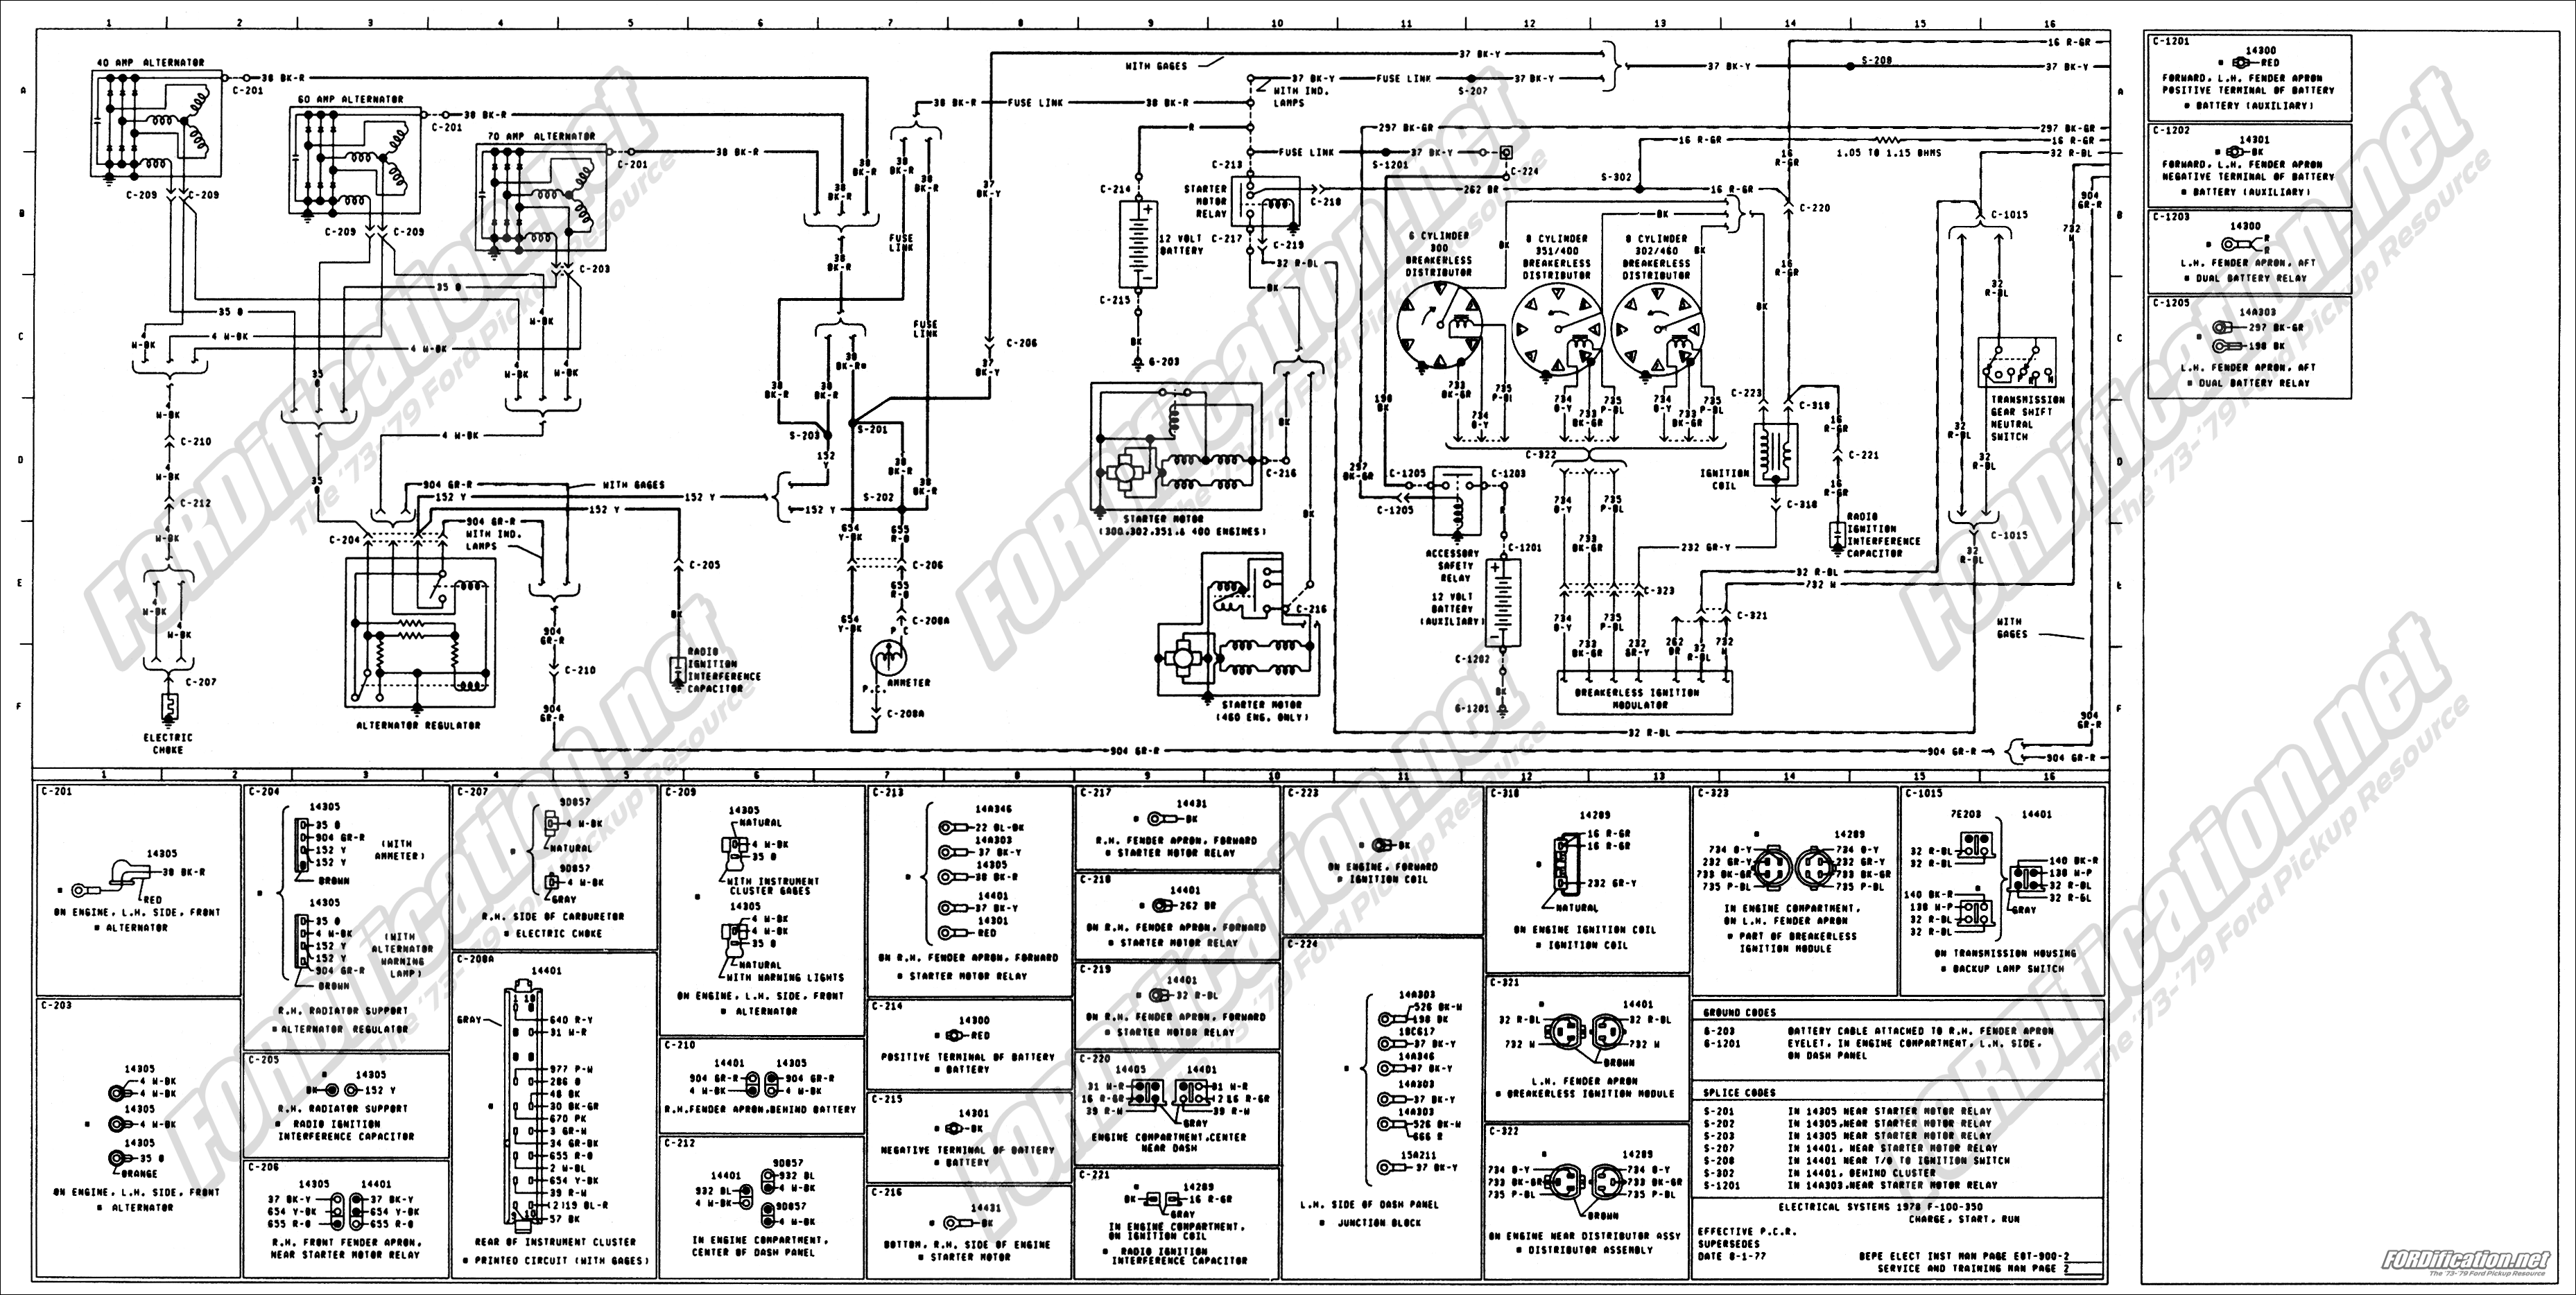 f truck alternator wiring diagram wiring diagrams wiring 78master 3of10 f truck alternator wiring diagram wiring 78master 3of10